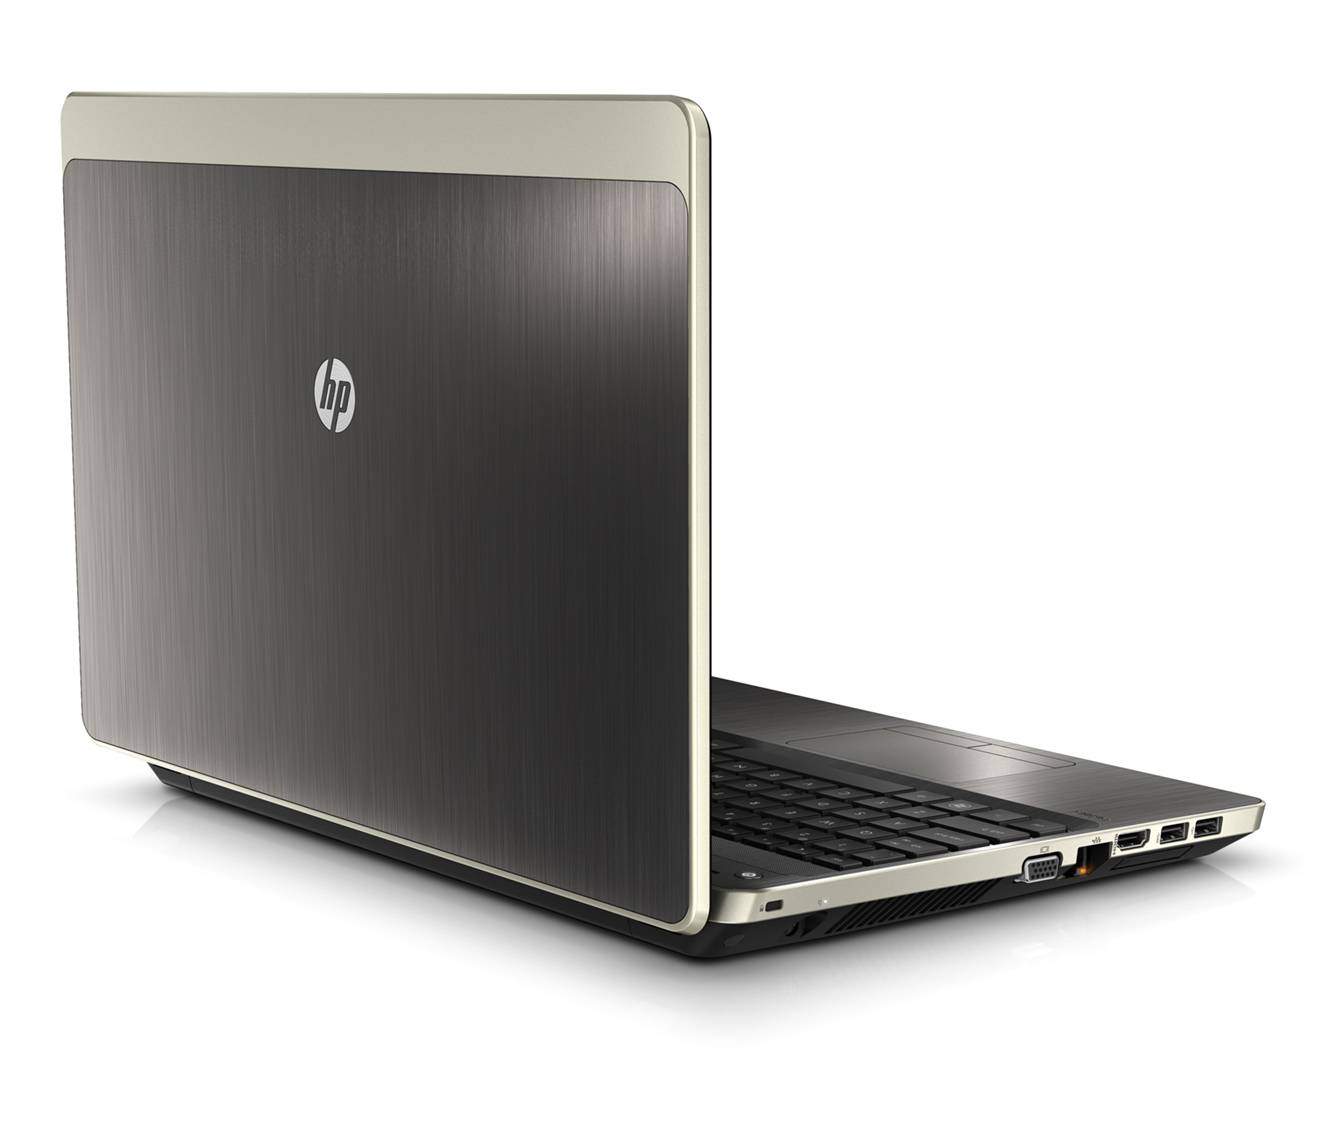 HP ProBook 5310m Notebook Realtek Media Card Windows 8 Driver Download